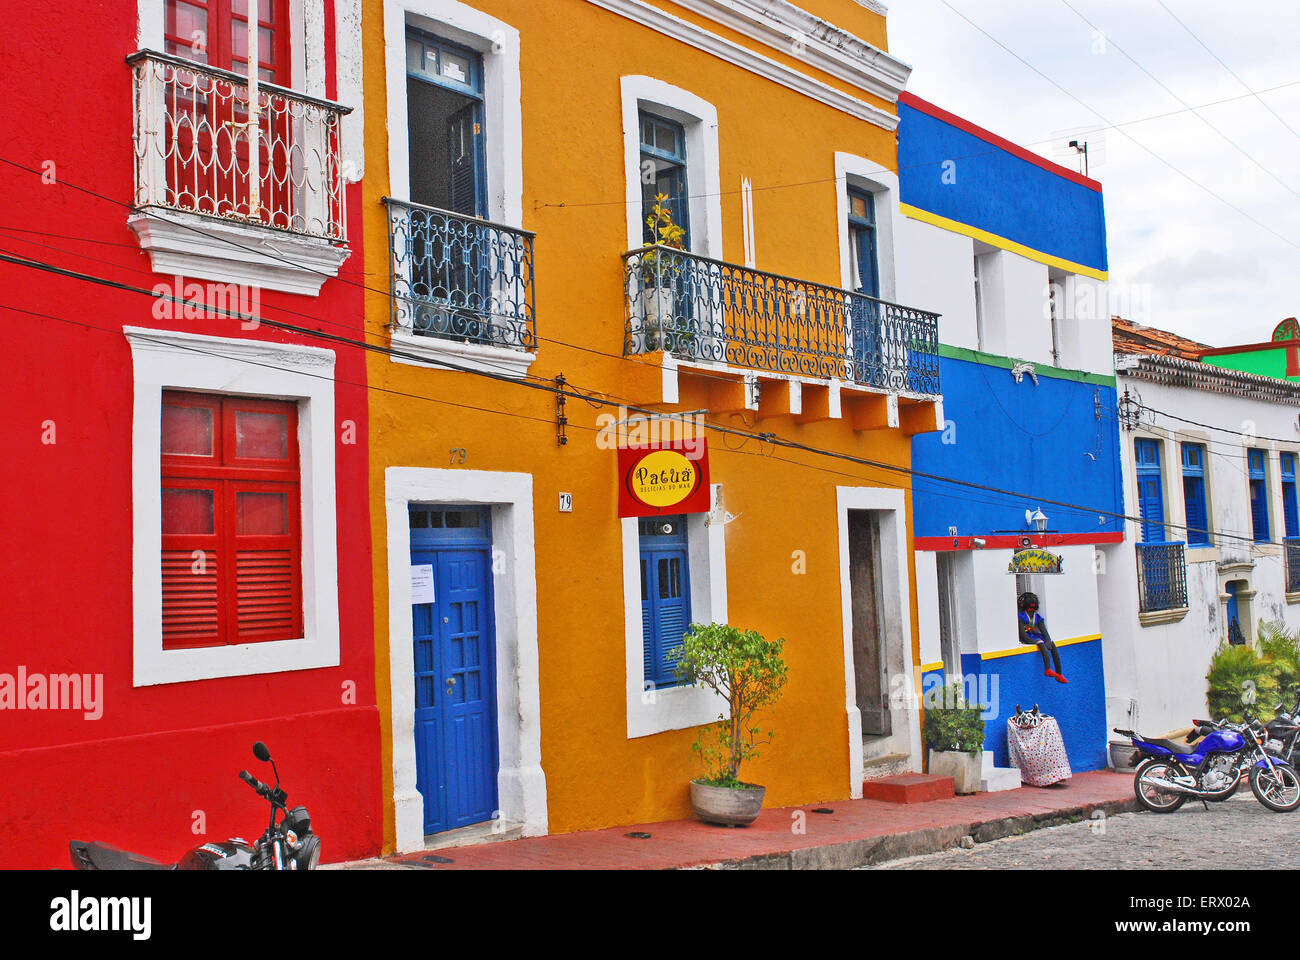 Beautiful colourful houses in Olinda, Recife, Brazil, on September 1st, 2009. - Stock Image